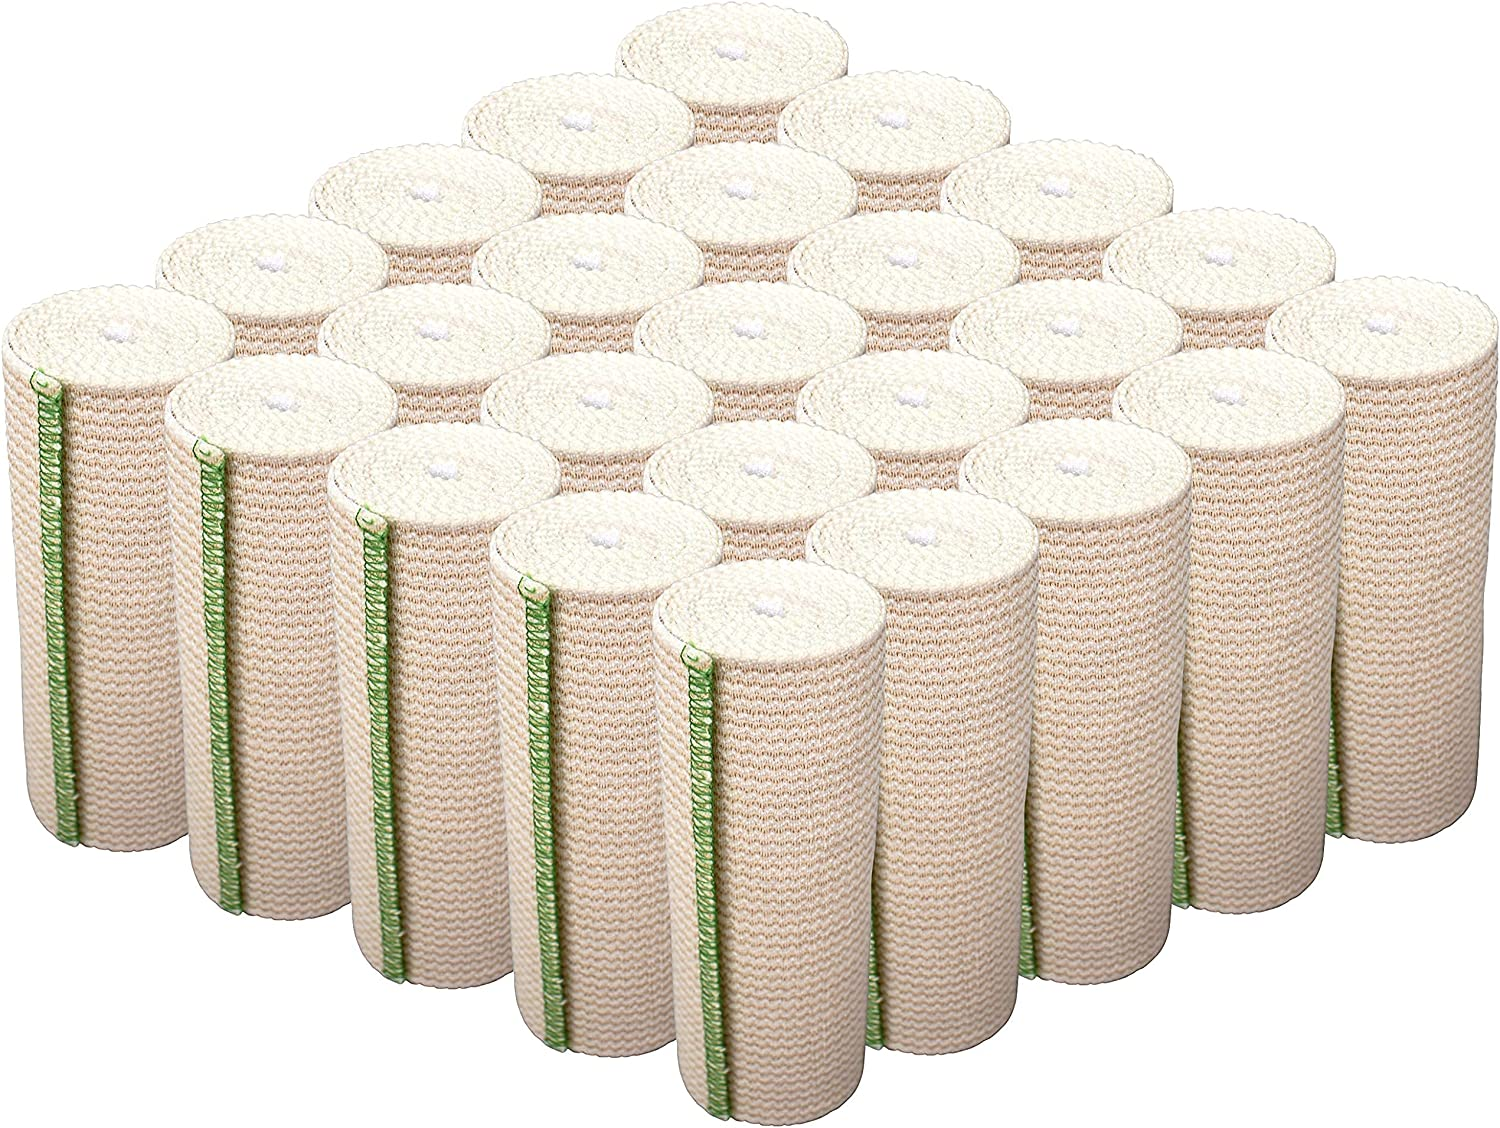 GT USA Organic Cotton Elastic Popular product Bandage Pack 40% OFF Cheap Sale Wrap 25 6